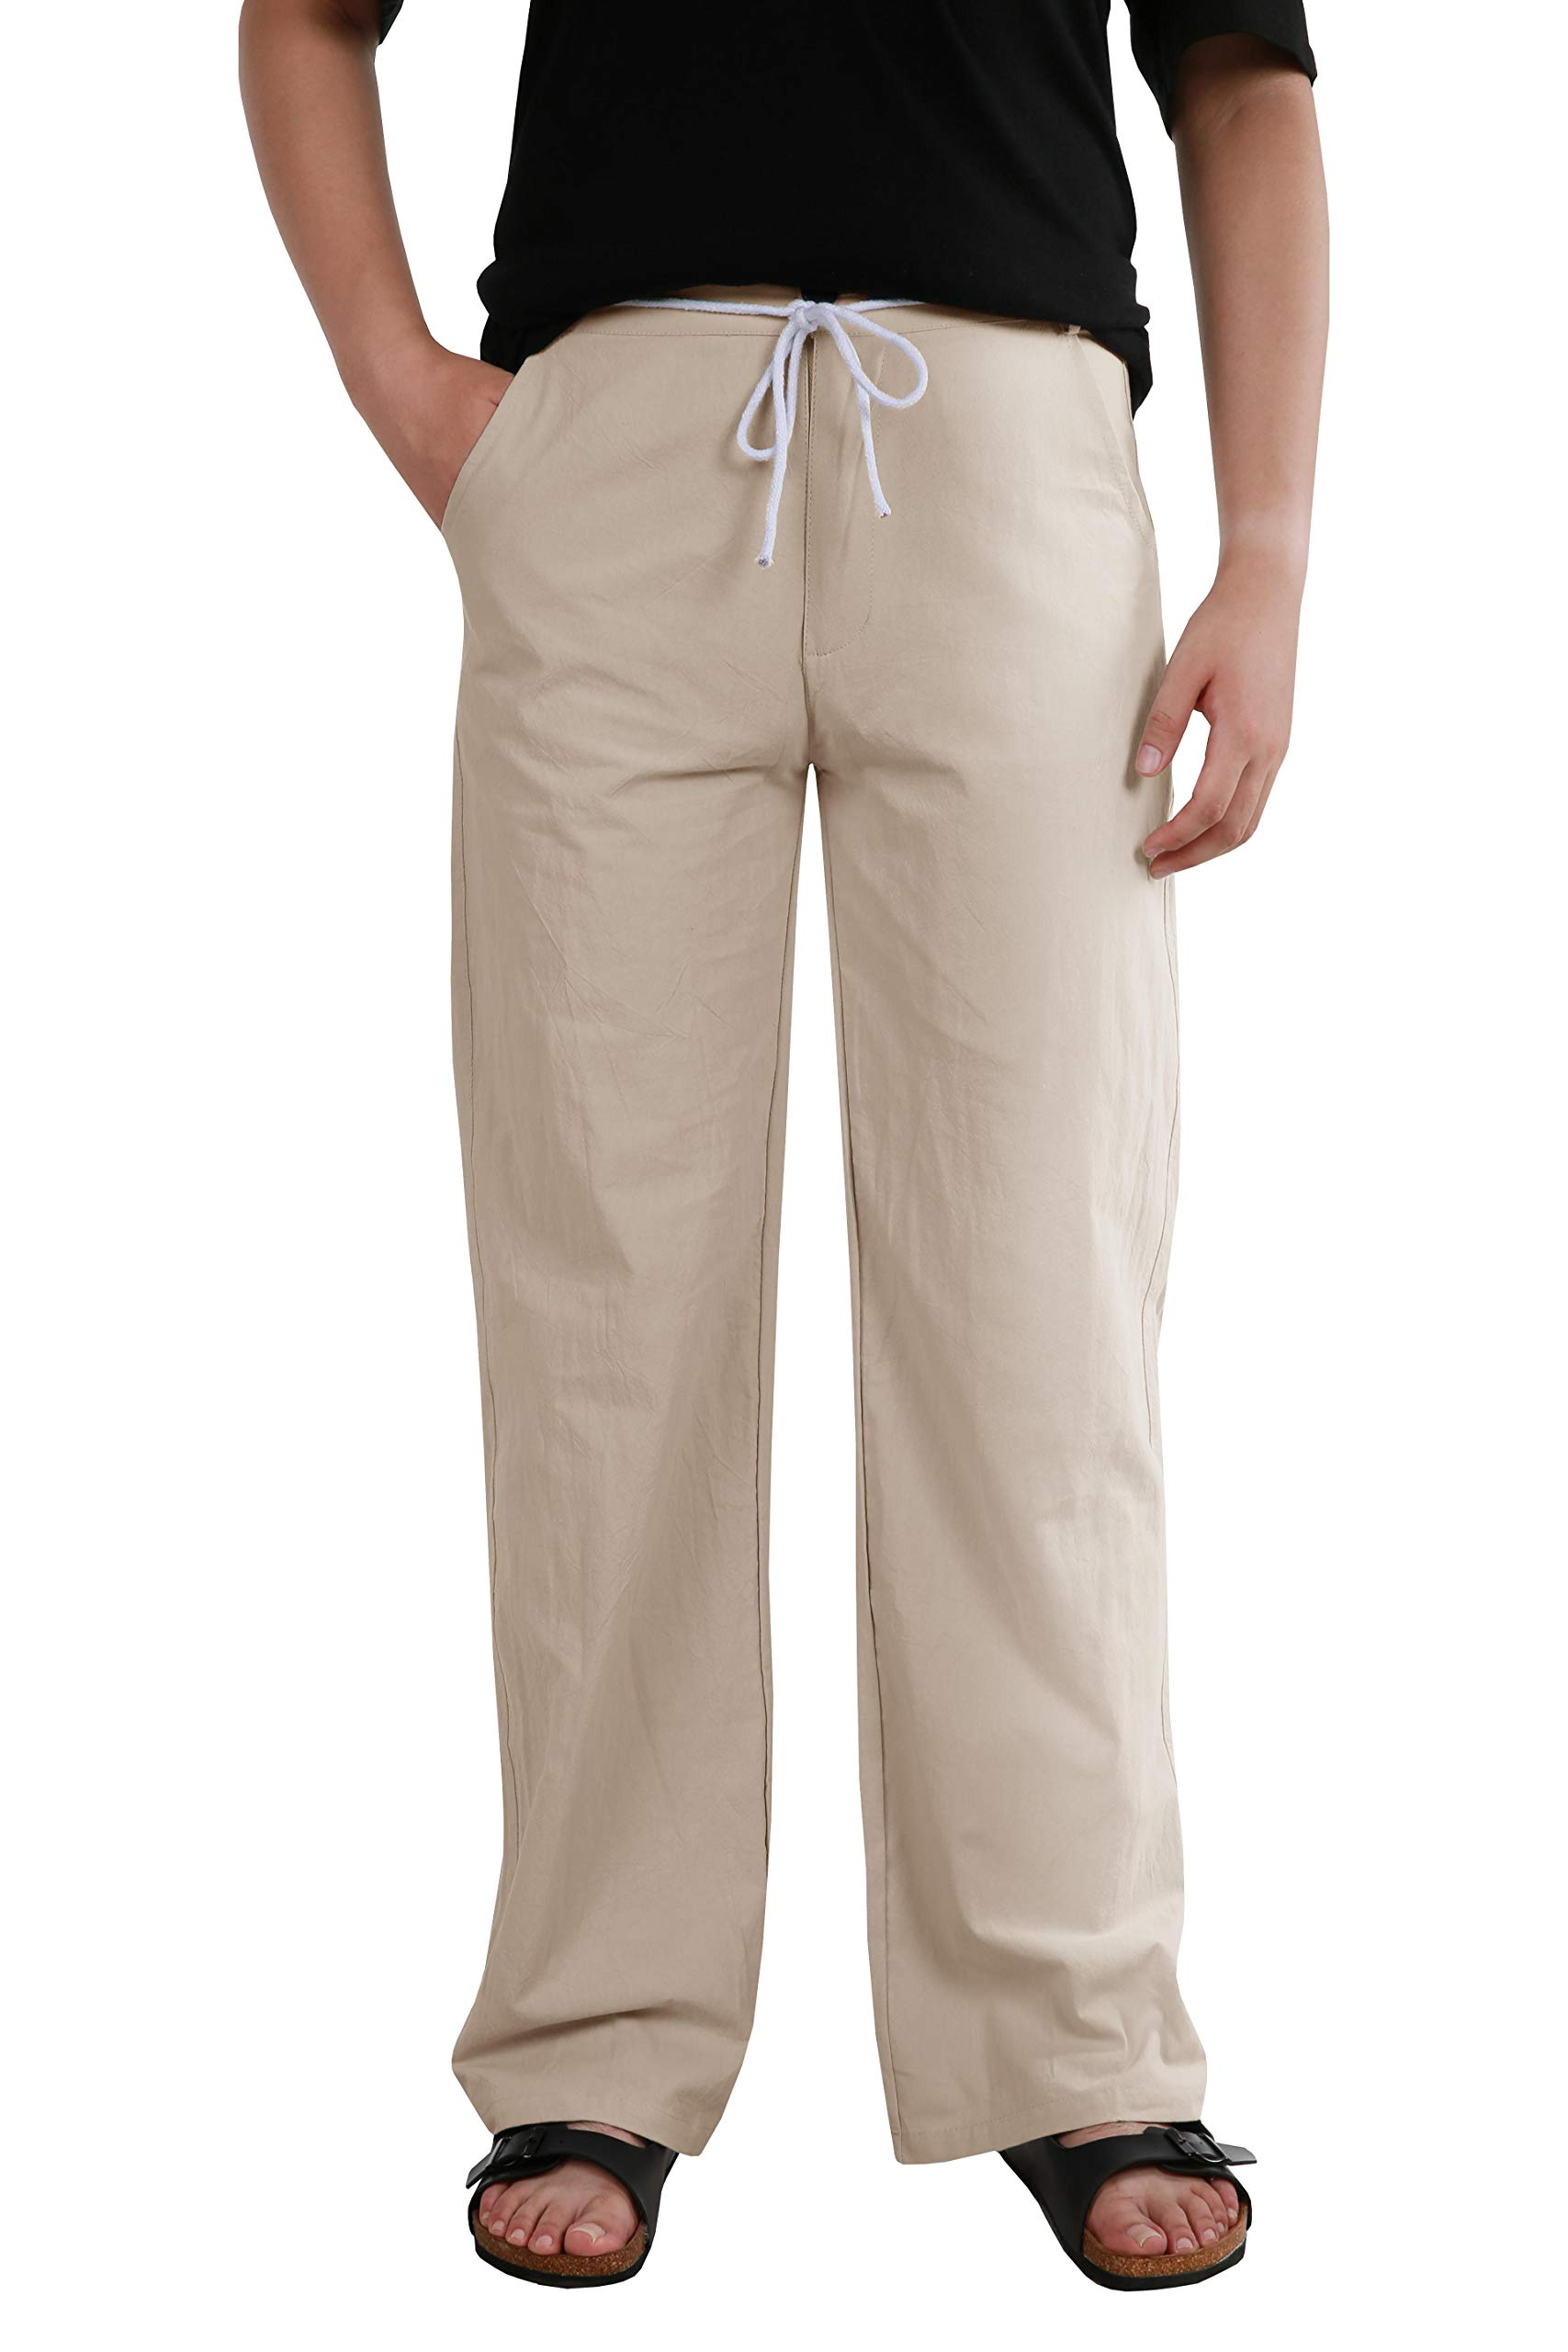 Makkrom Mens Casual Beach Trousers Linen Drawstring Summer Pants